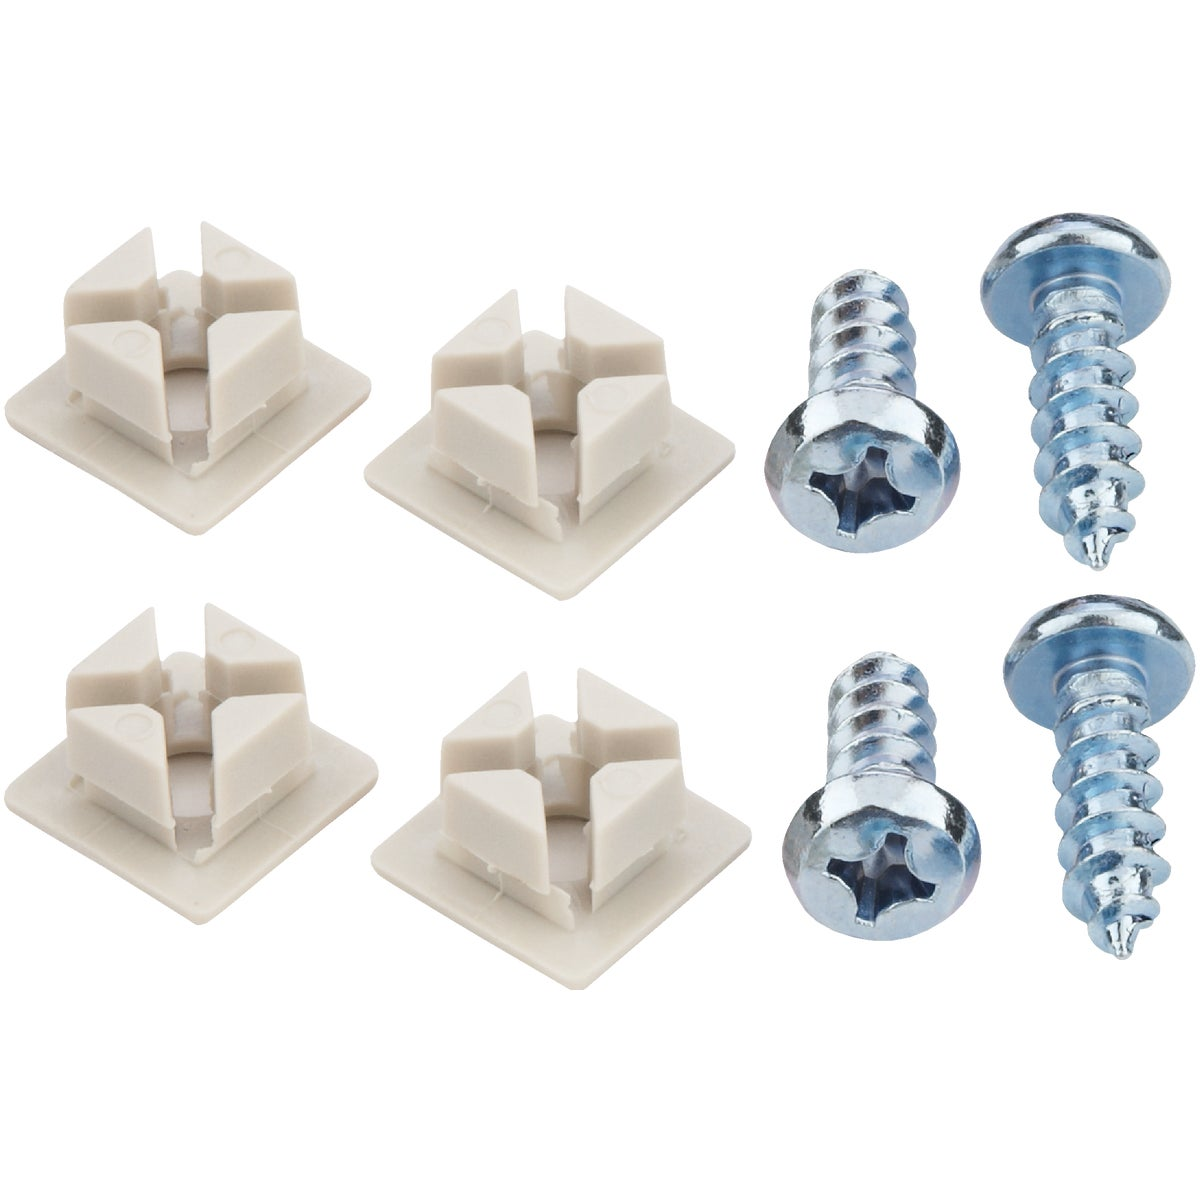 WHT MTL LICENSE FASTENER - 93322 by Custom Accessories